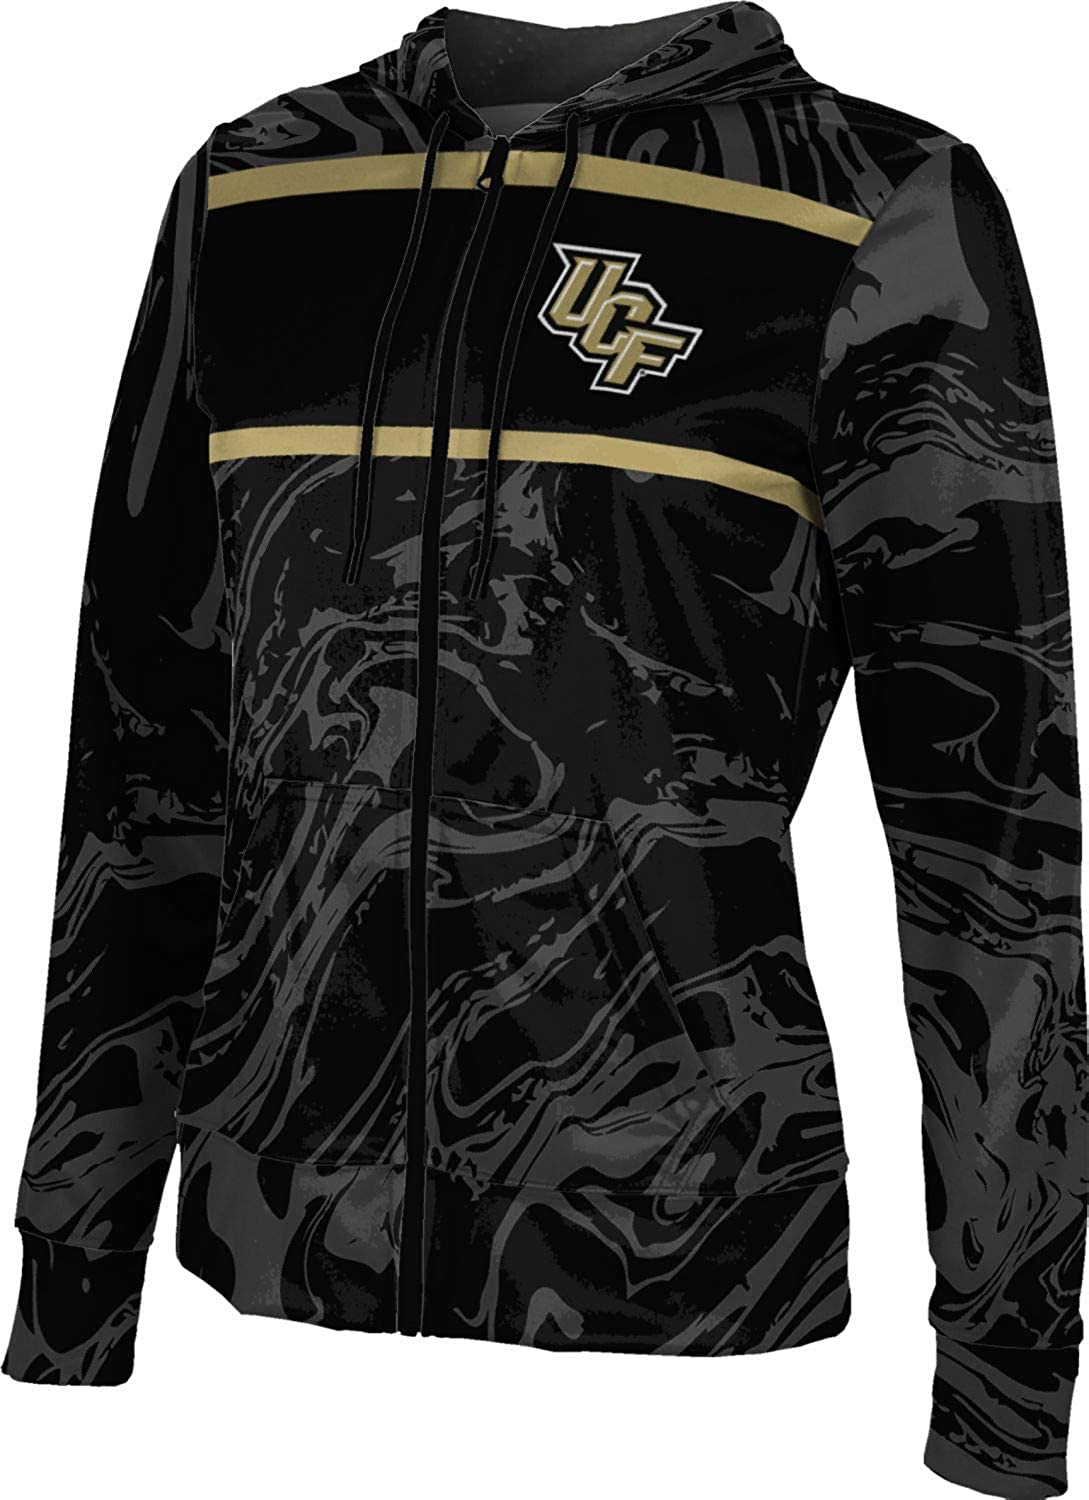 Surprise price ProSphere University of Max 79% OFF Central Florida Girls' Zipper Hoodie Sc